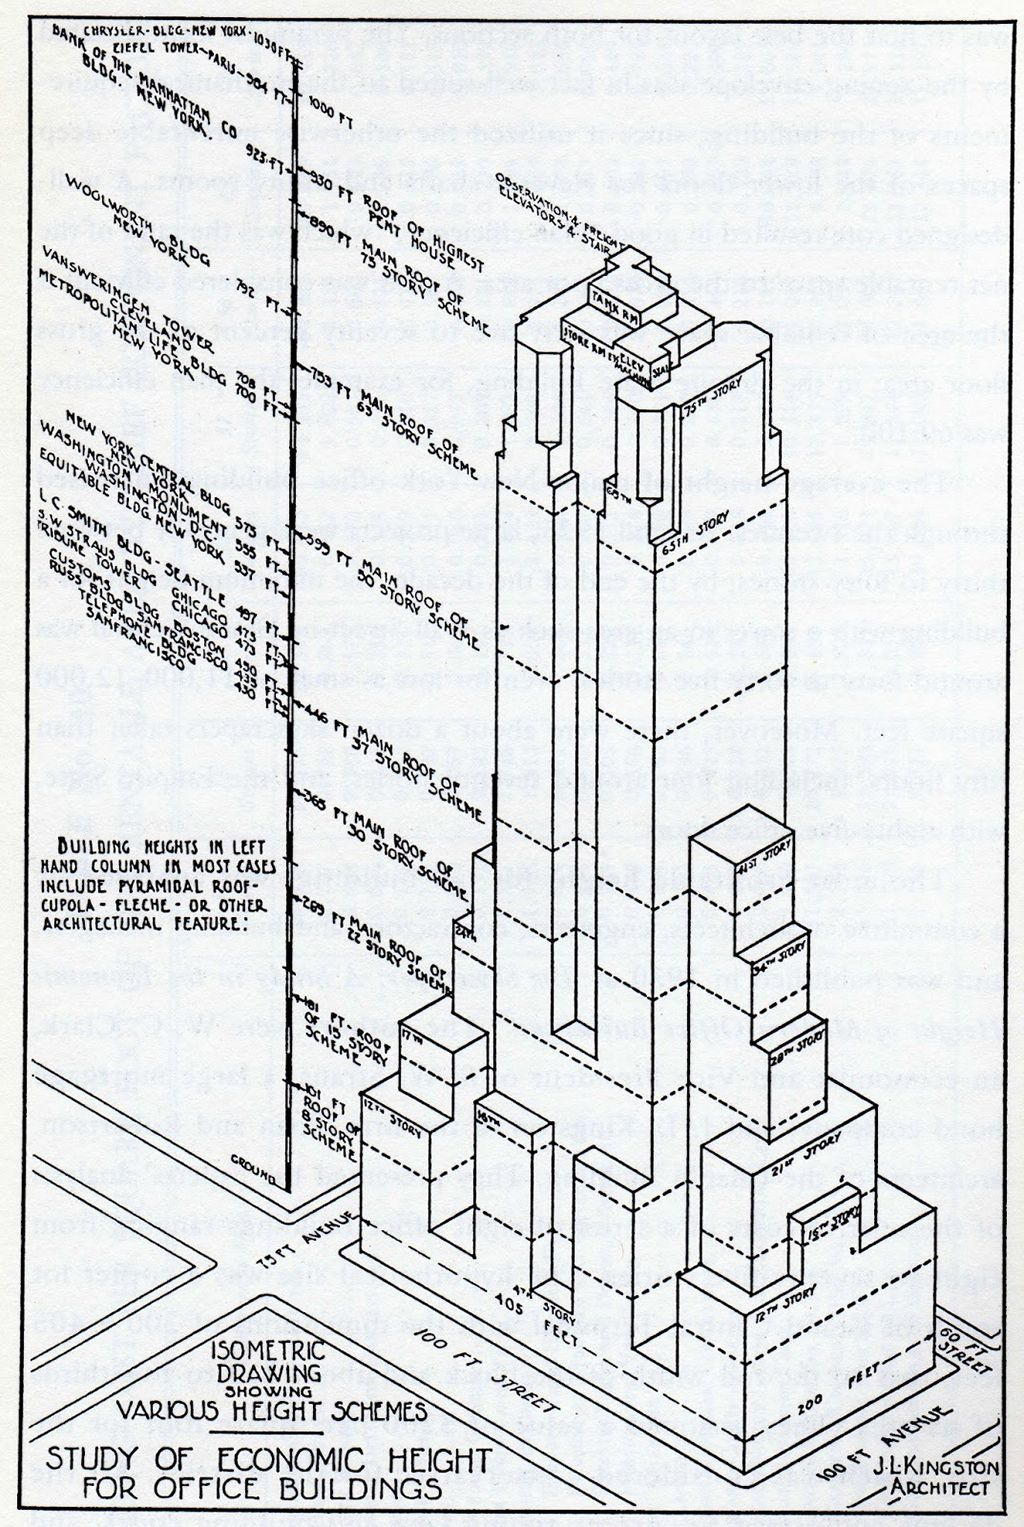 Studyofeconomicheightfroofficebuildingthtwereappliedfor - Nyc map empire state building